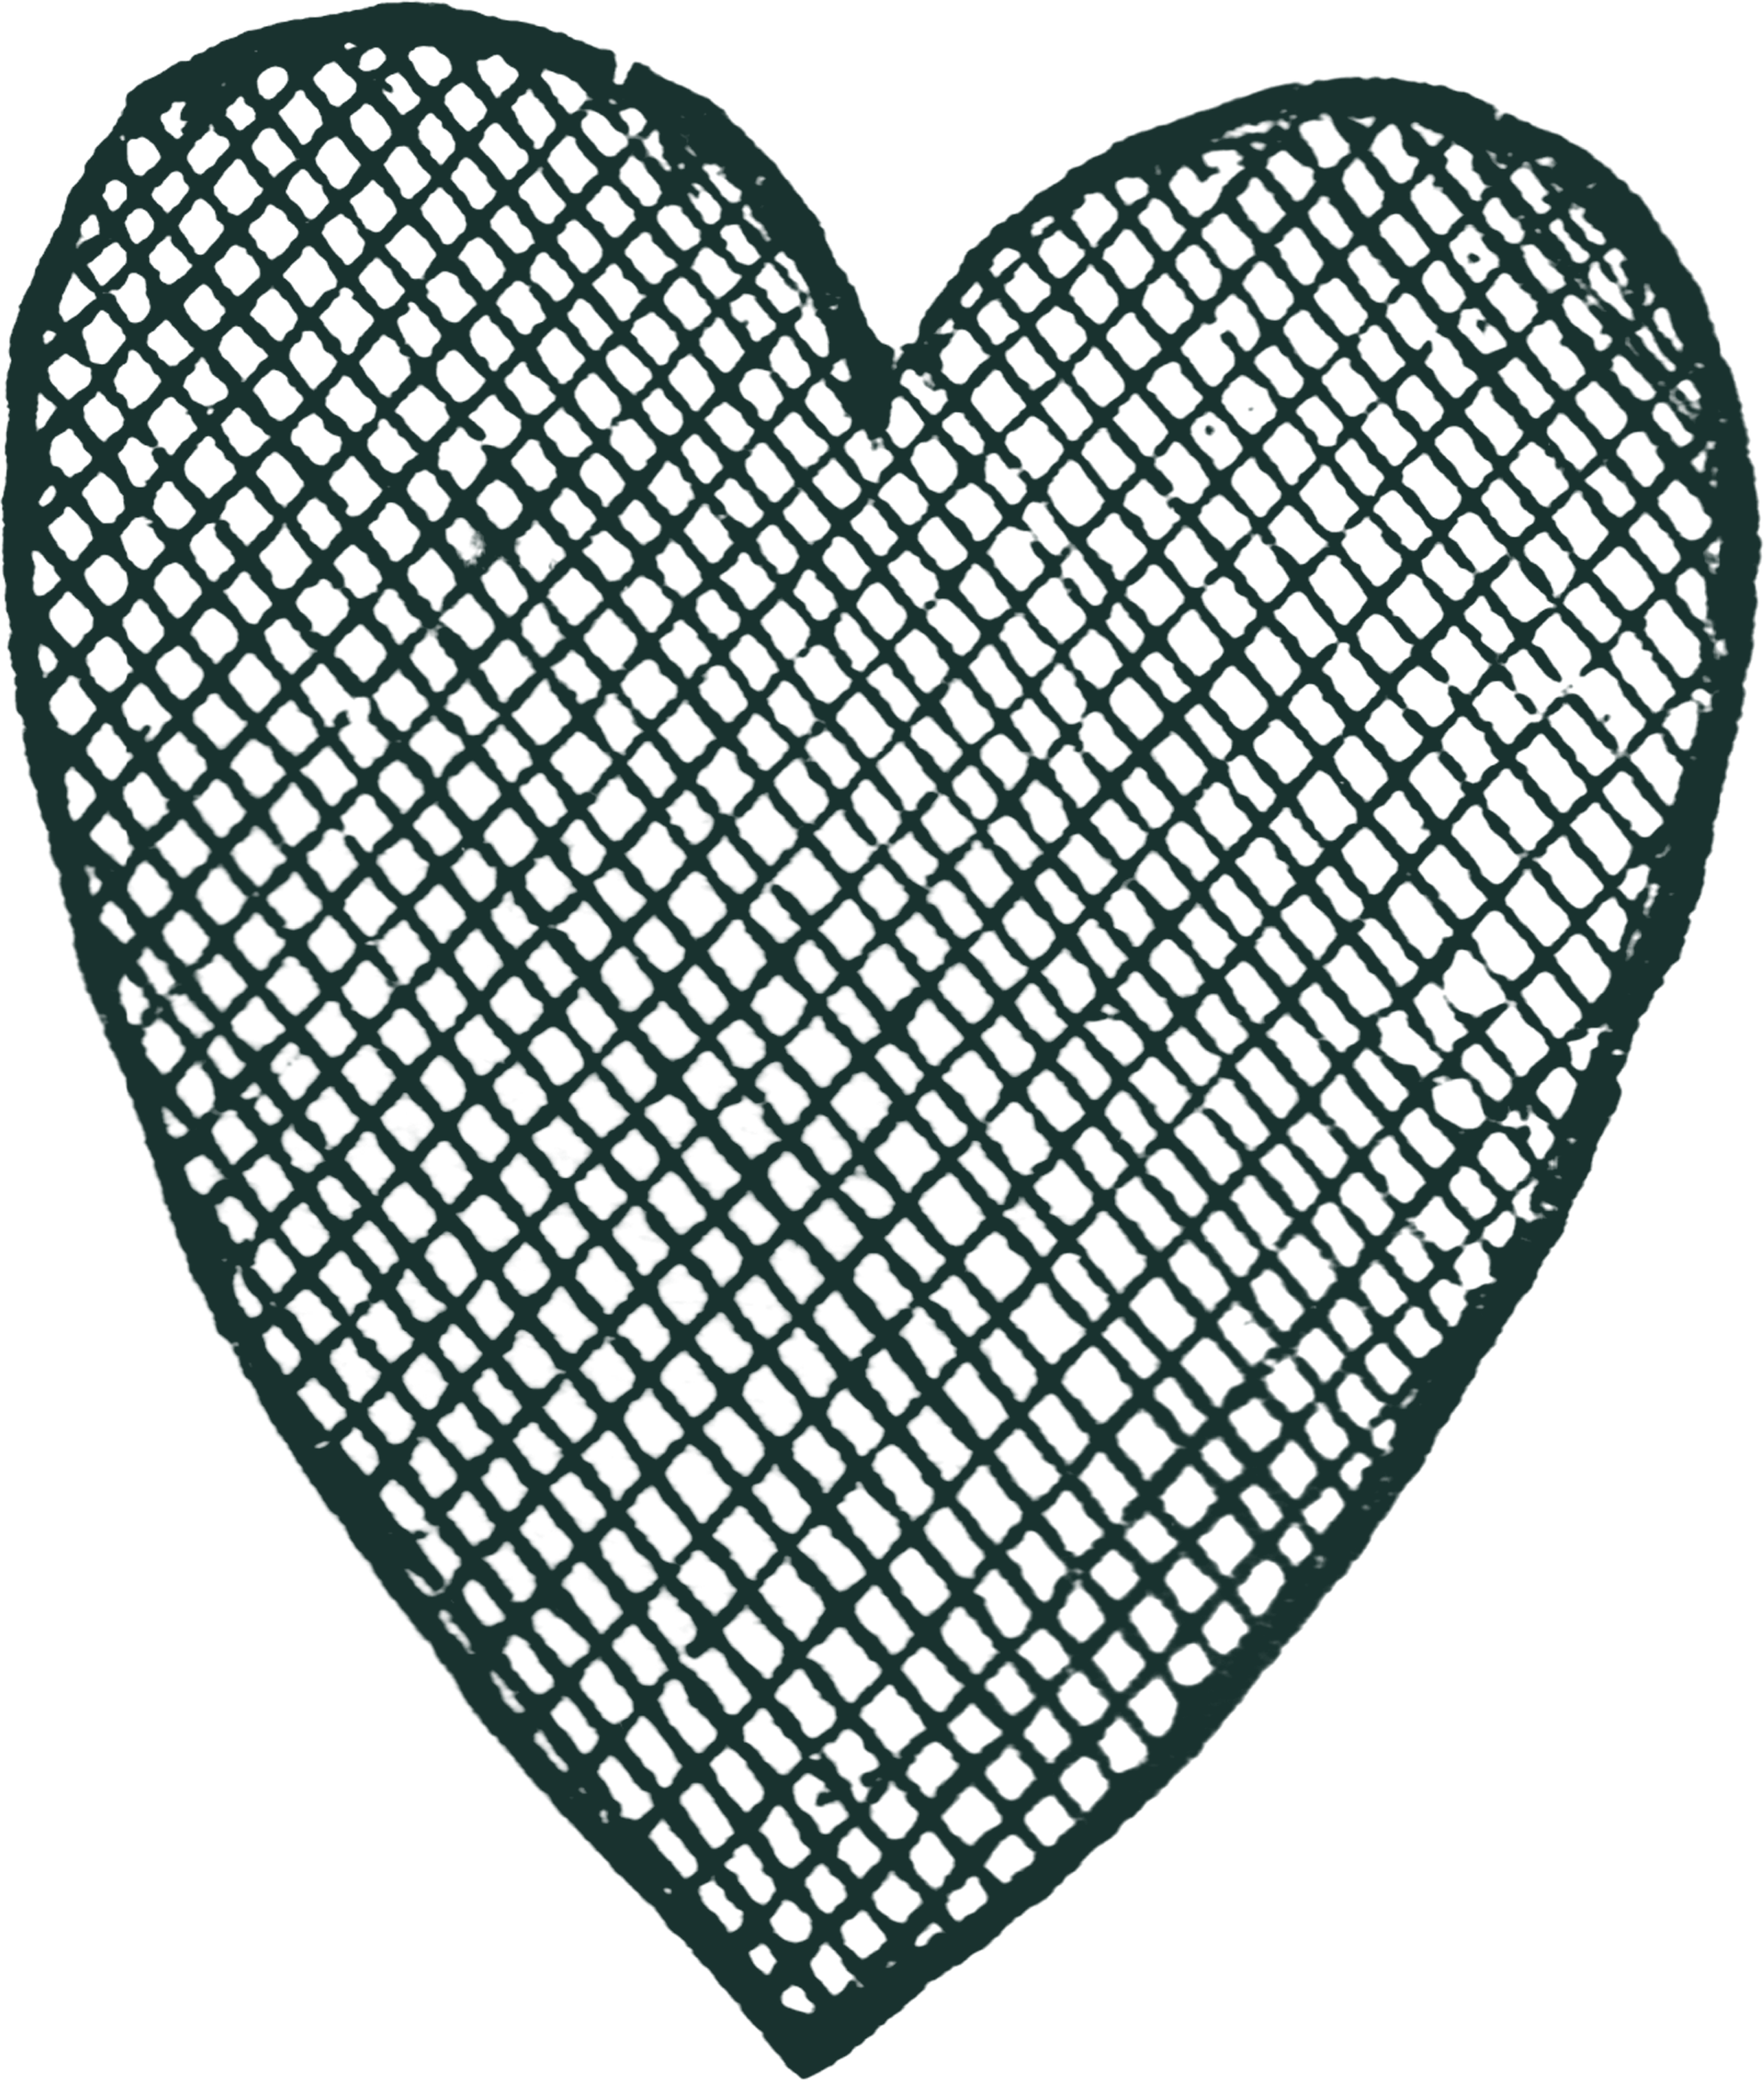 heart-r1.png